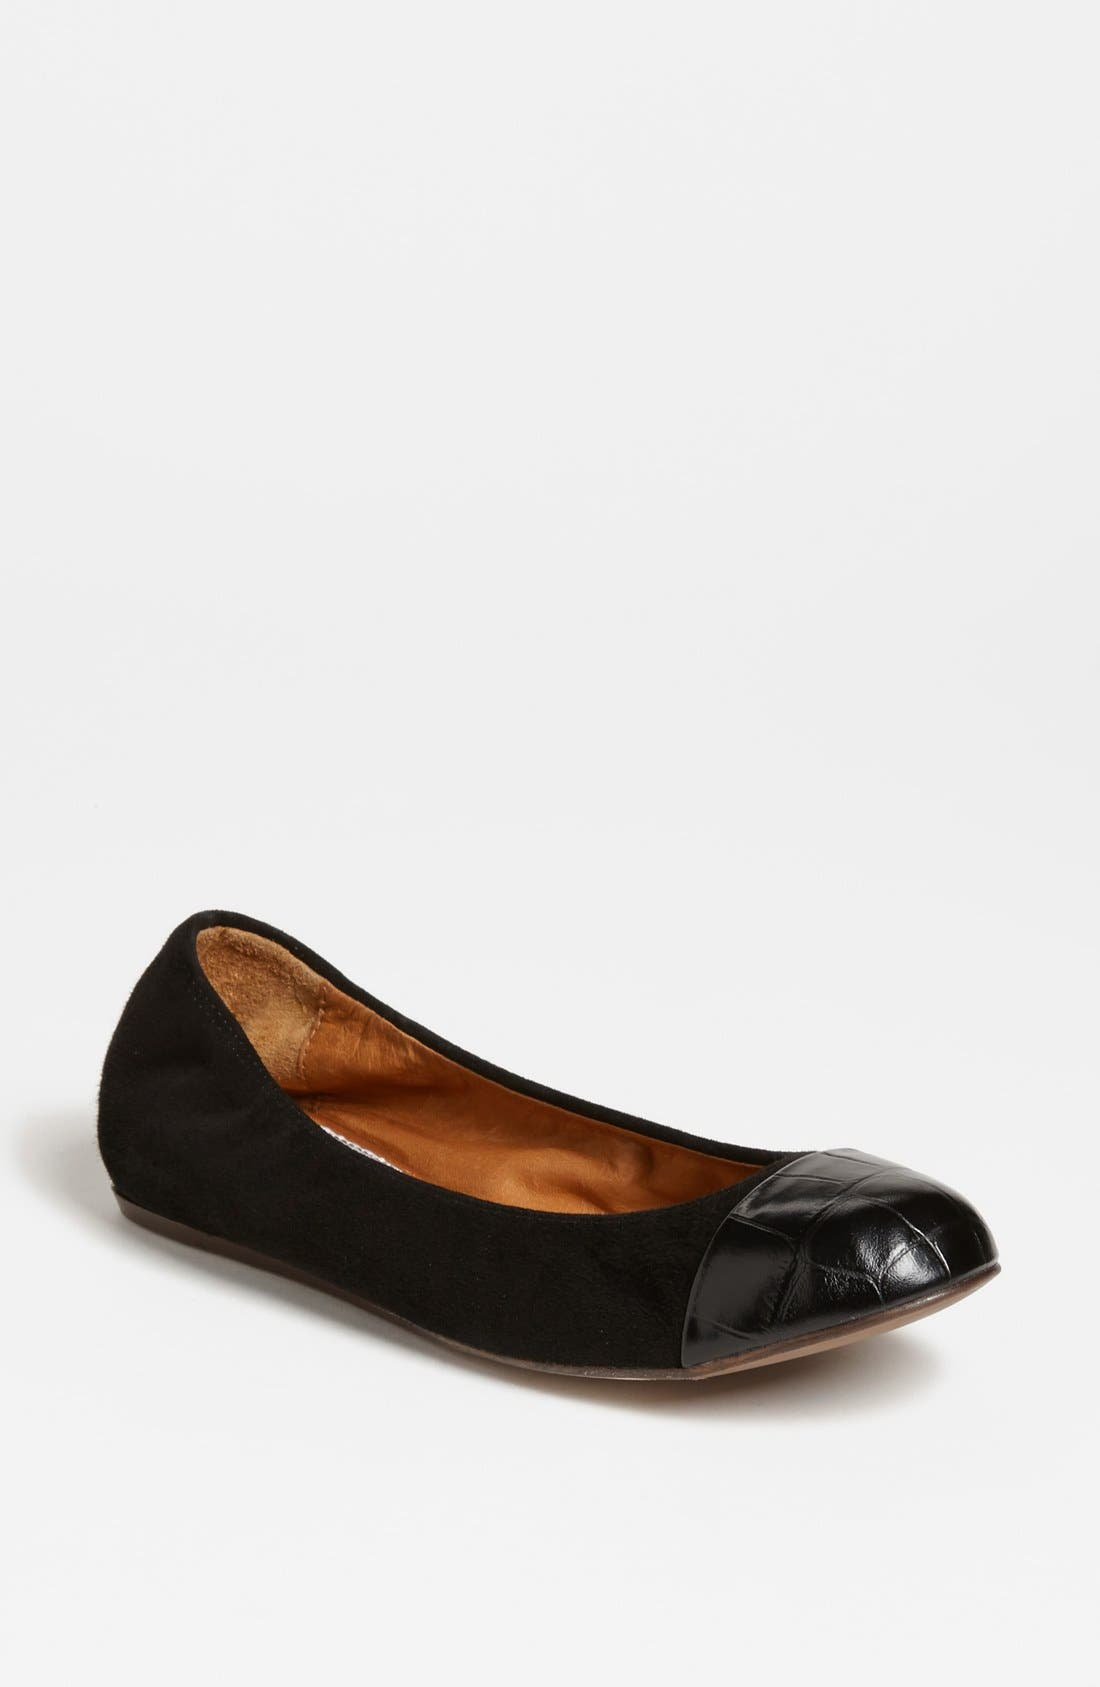 Alternate Image 1 Selected - Lanvin Cap Toe Ballerina Flat